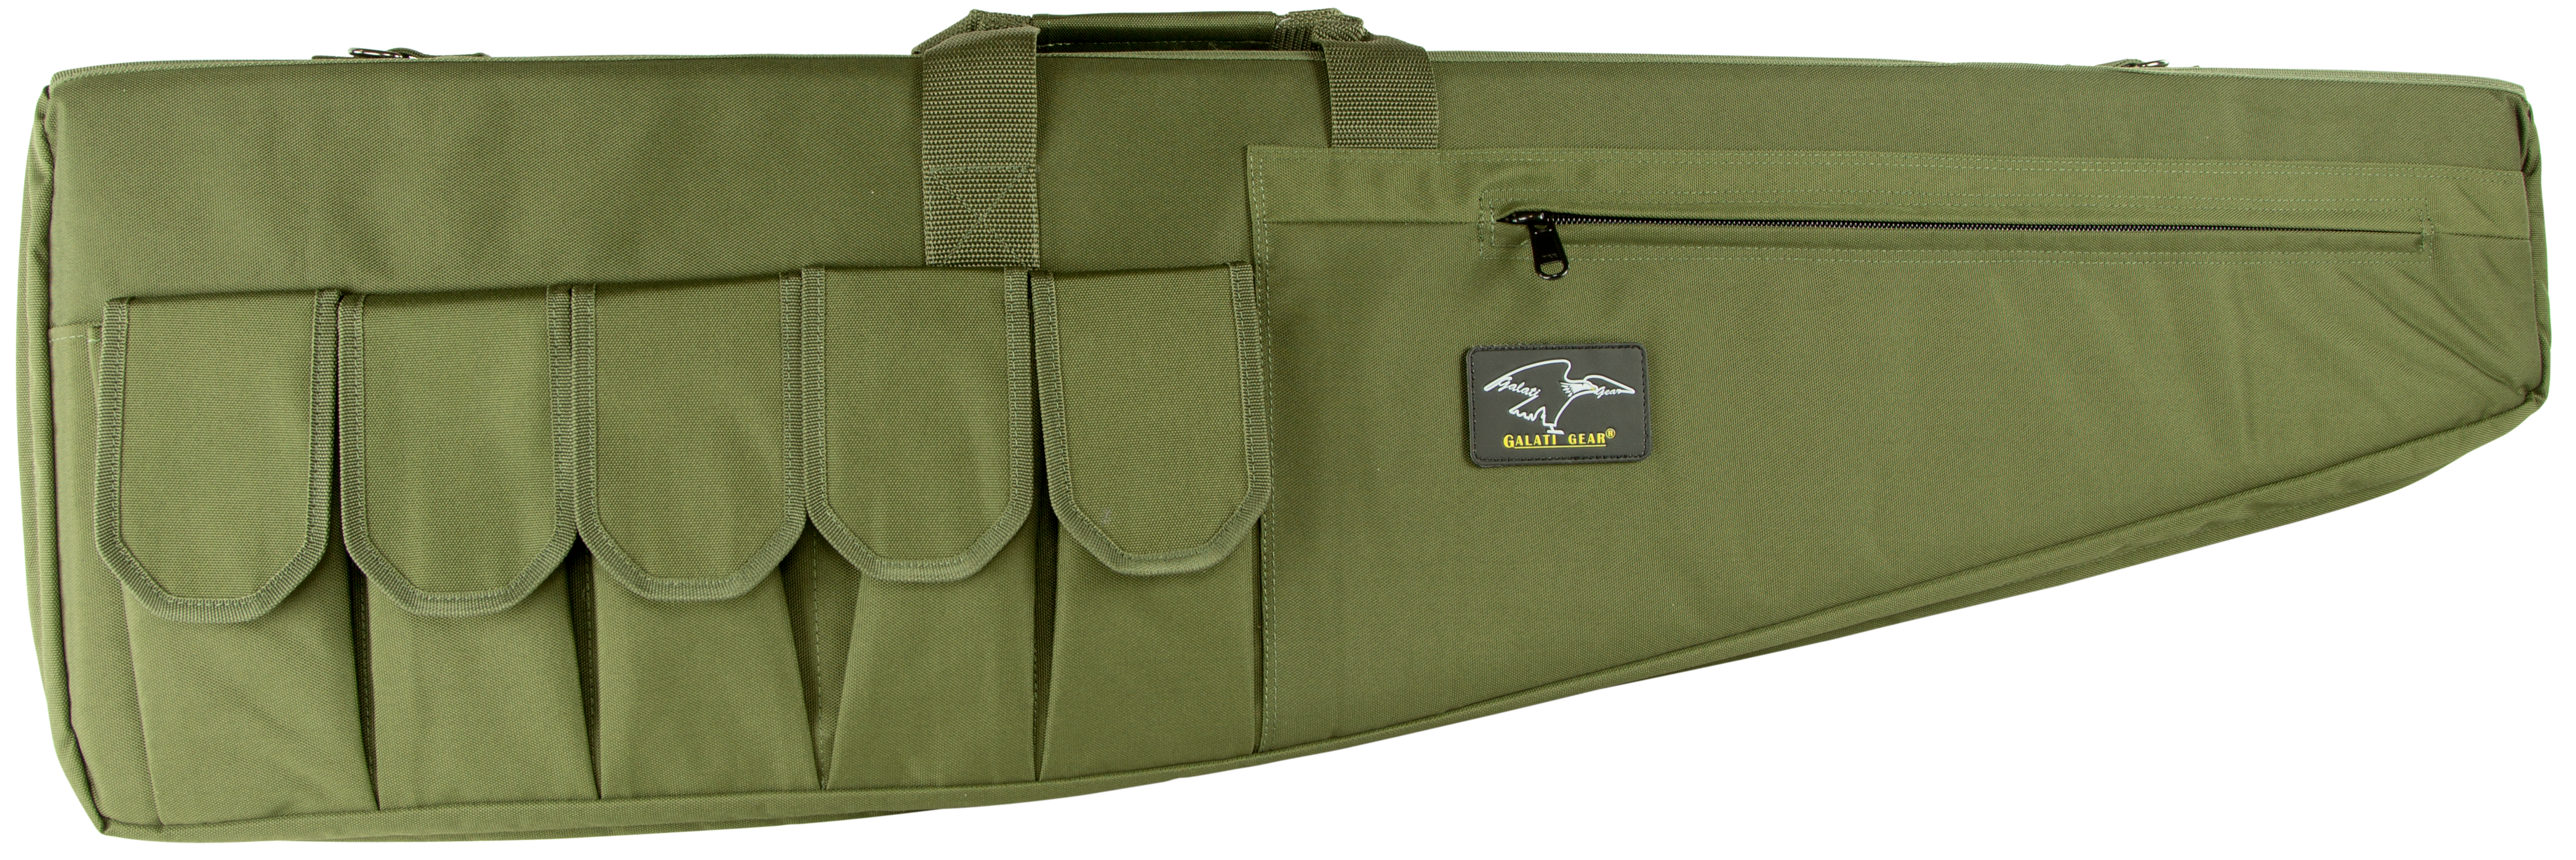 Galati Gear 4612OD15 XT Rifle Case 1000D Nylon Soft